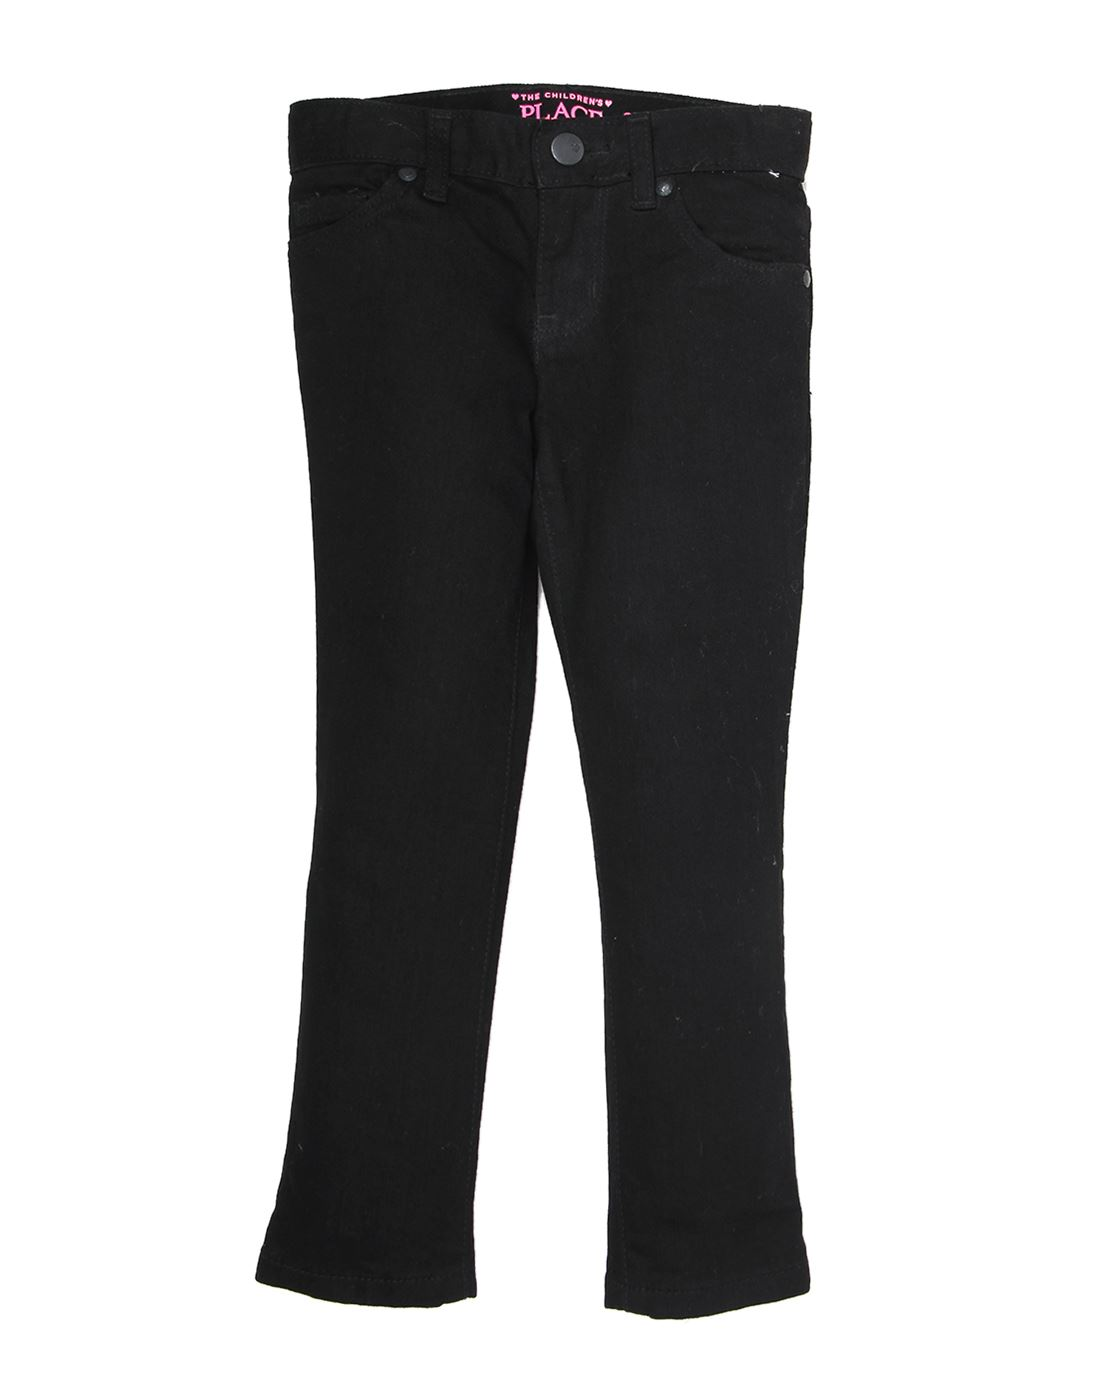 The Children'S Place Girls Black Jeans